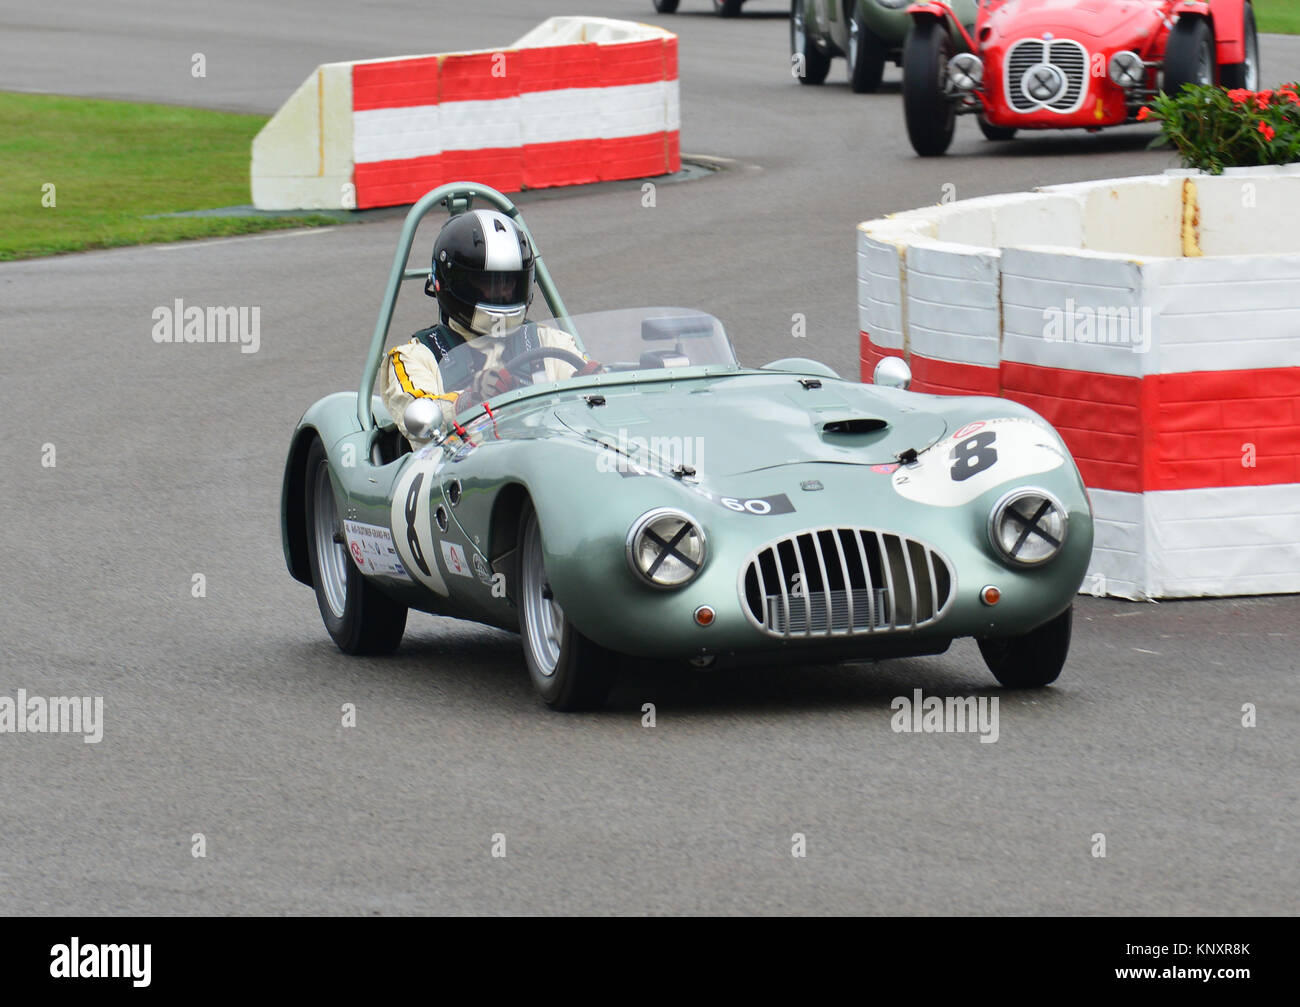 Rudolf Ernst, Kleft-Climax 1100, Goodwood Revival 2013, madgwick Cup. Stockbild